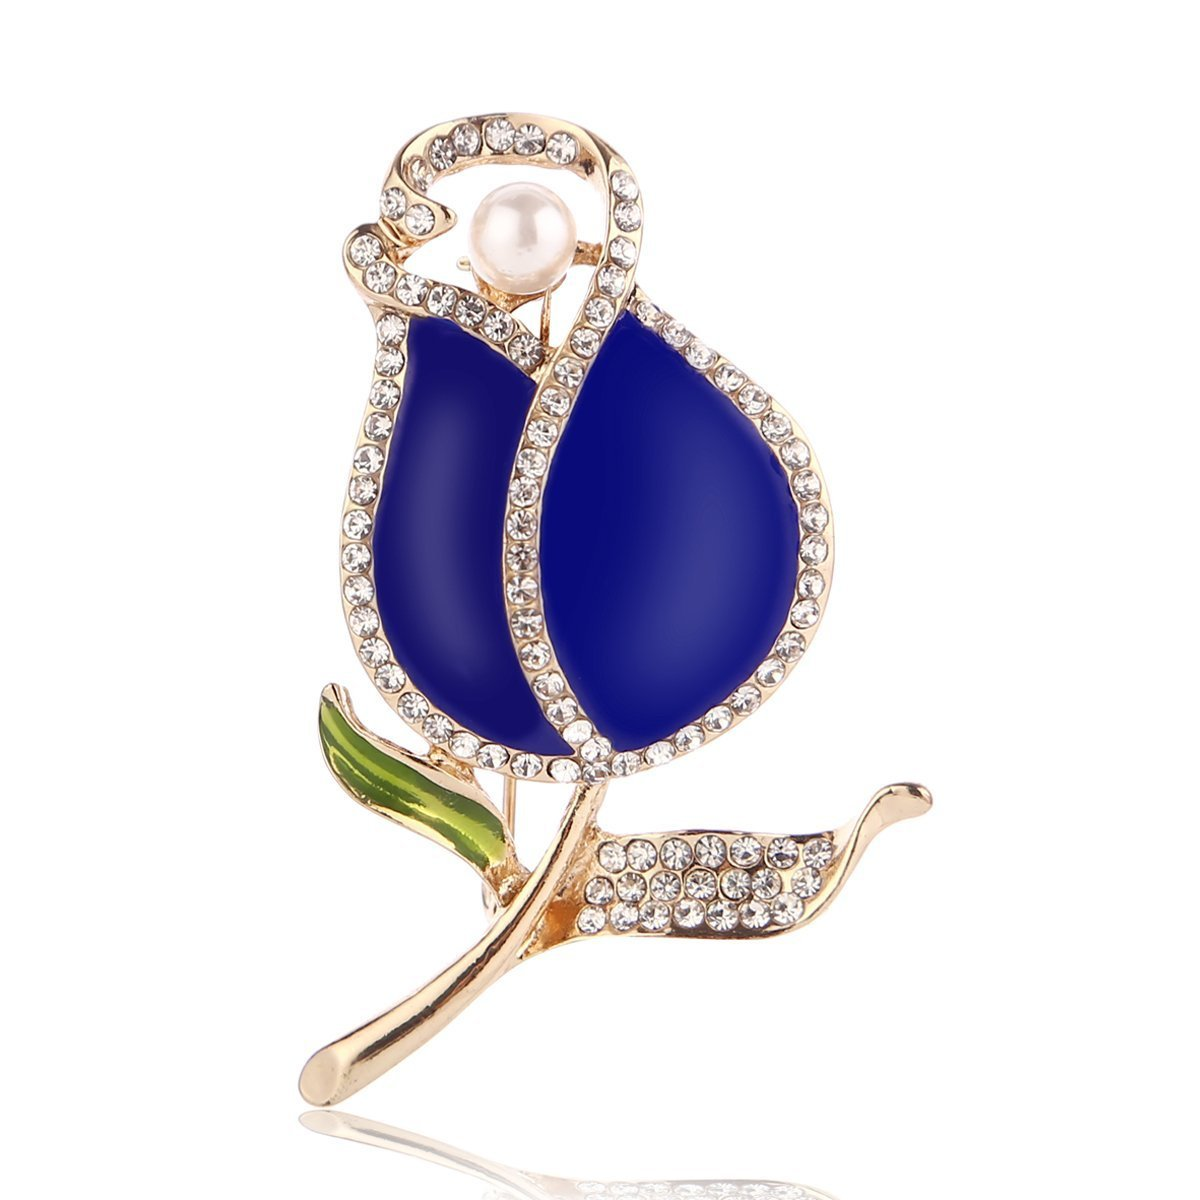 Humerry Women Lily Brooch Pins Enamel Blue Flower Brooches for Wedding Party